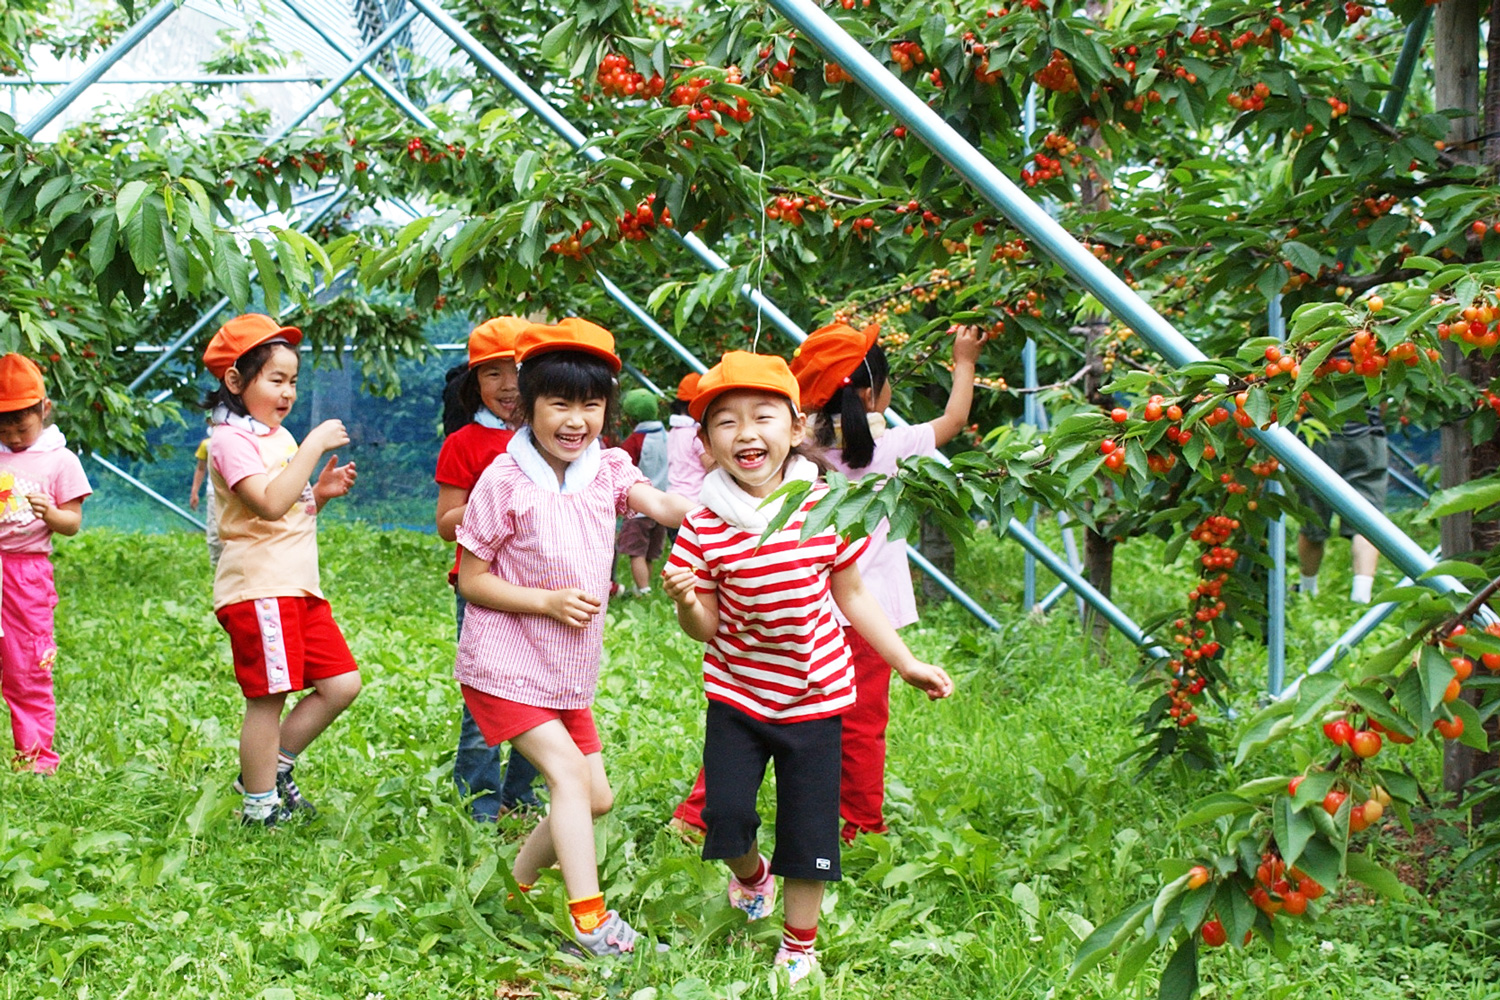 Picking cherries will be a great family activity.